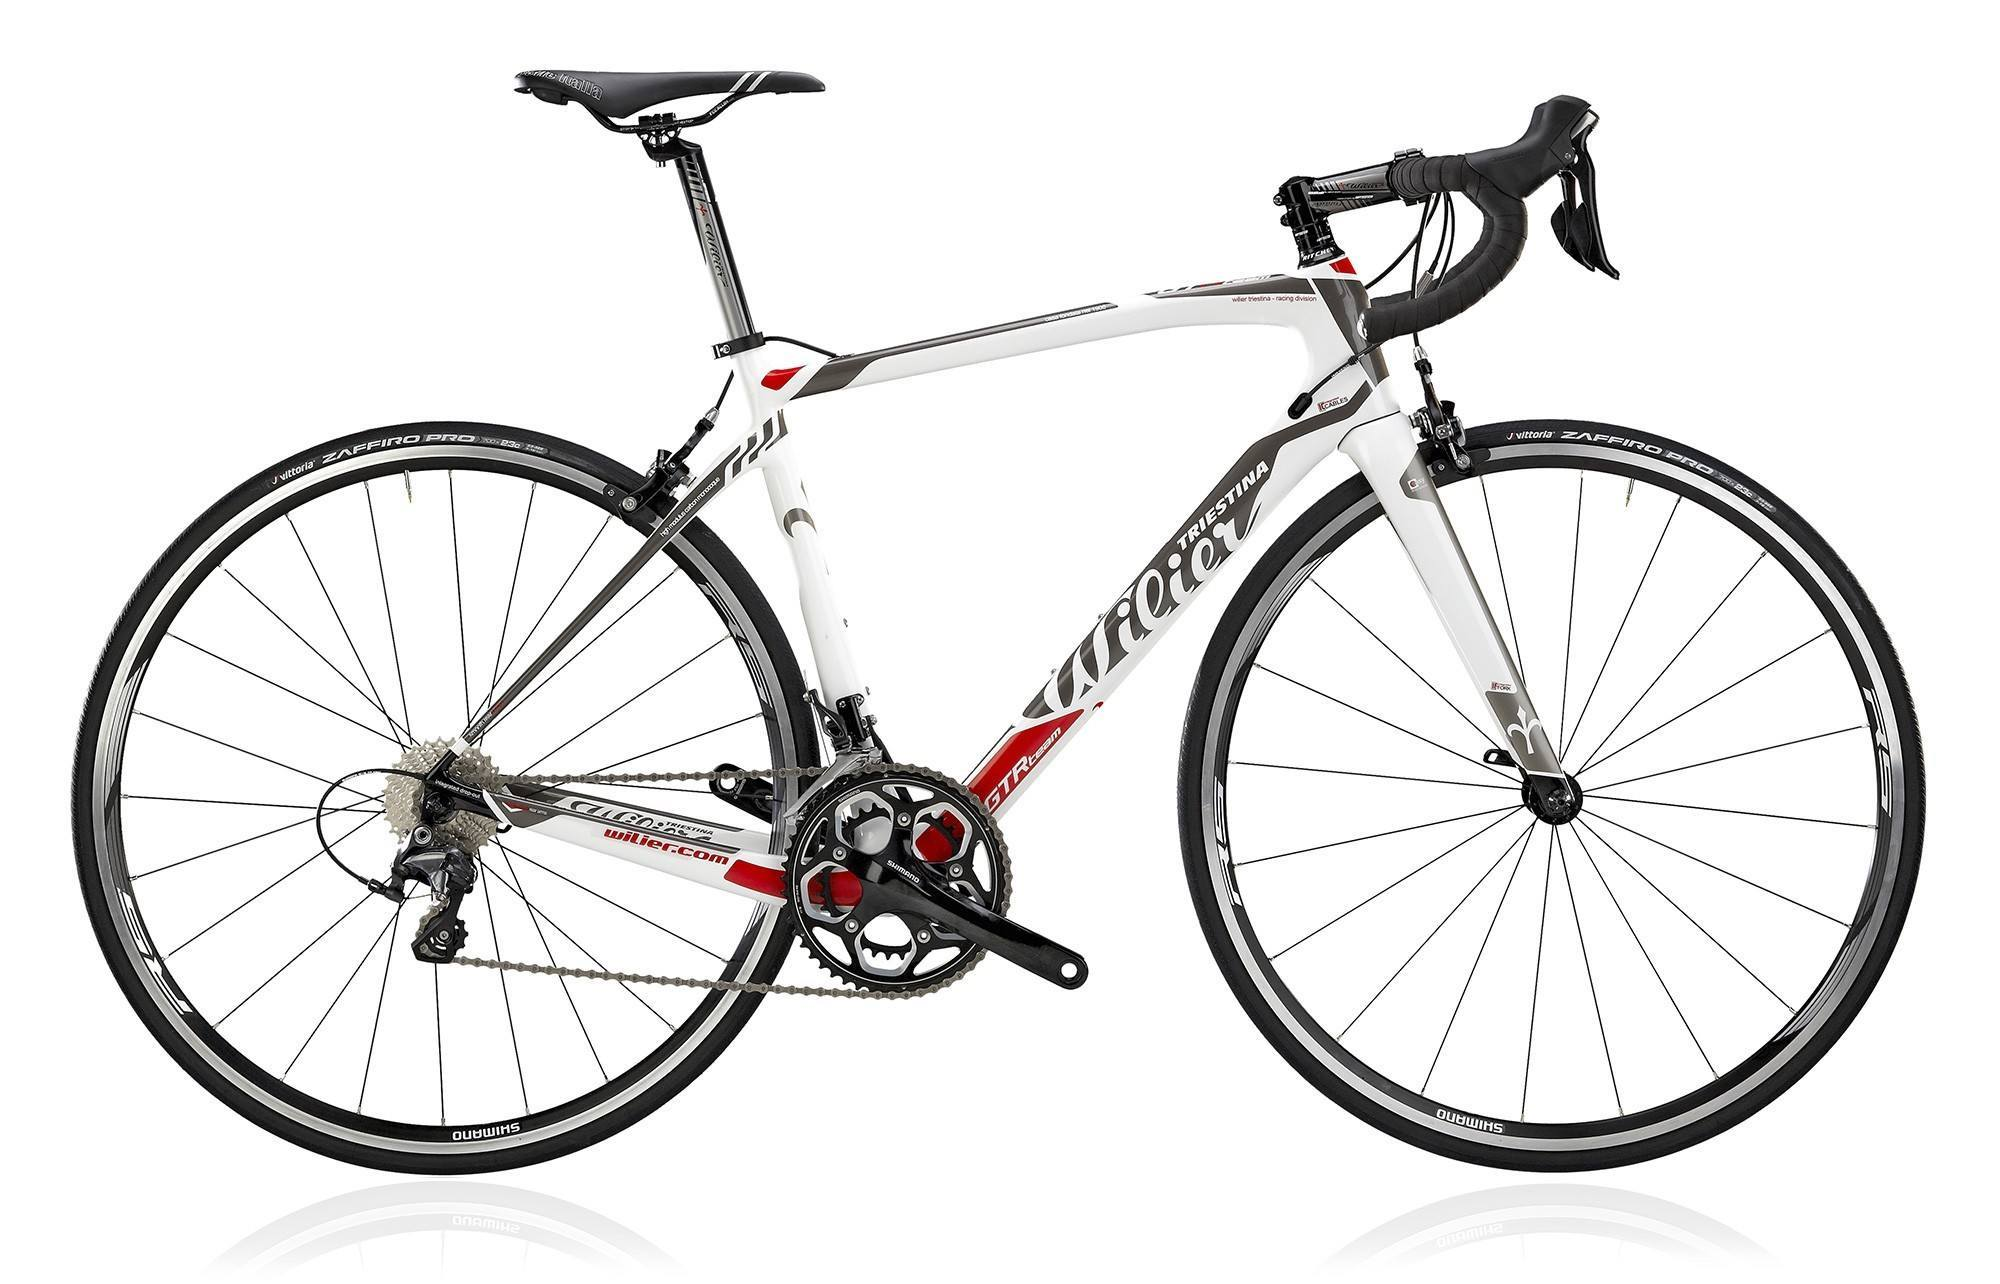 2016 wilier gtr team 105 bike r a cycles. Black Bedroom Furniture Sets. Home Design Ideas